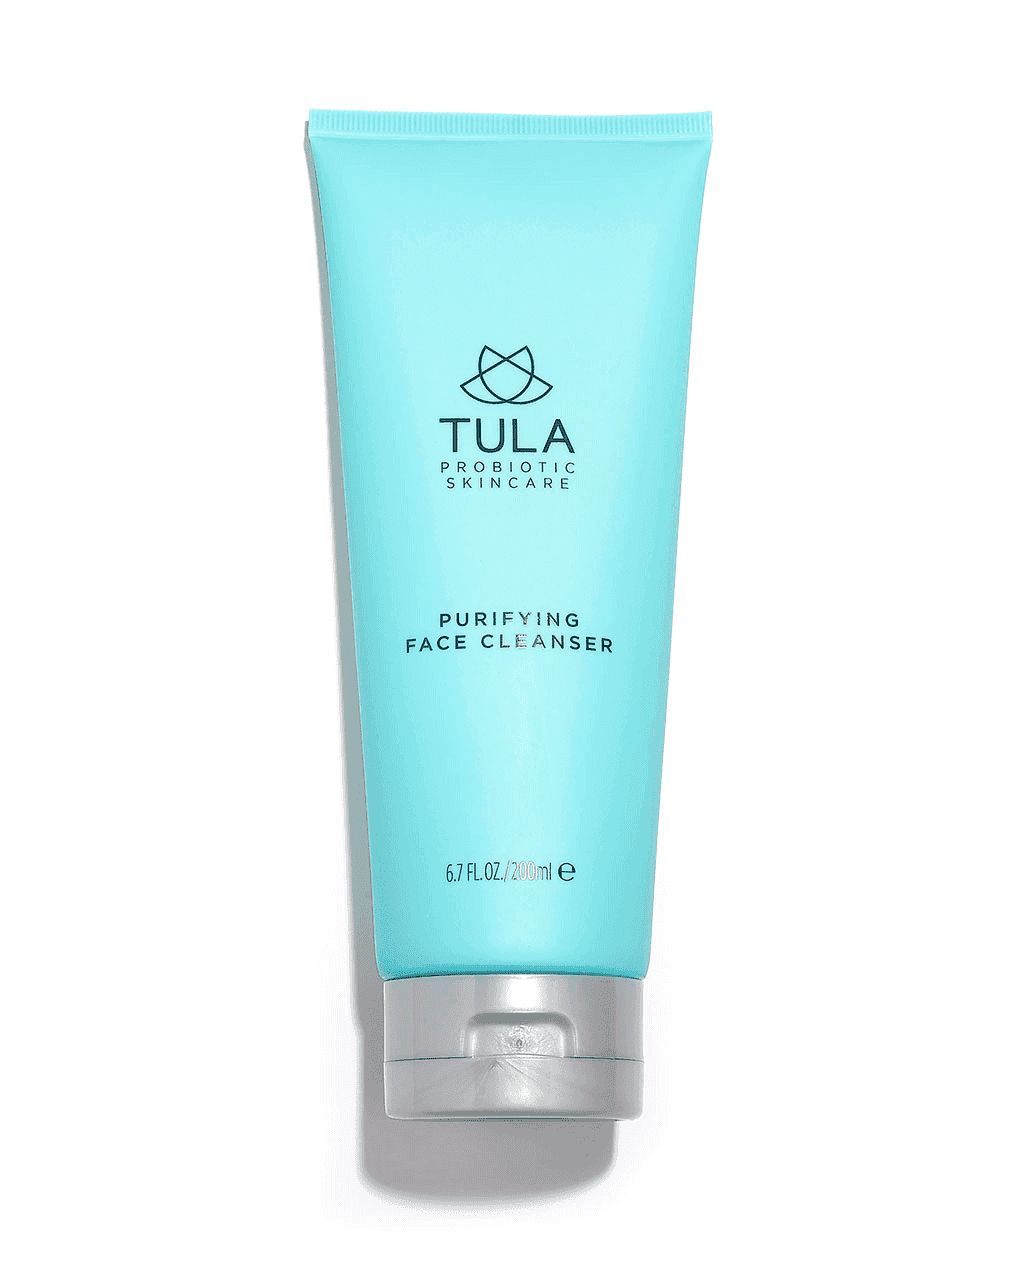 TULA Face Cleanser